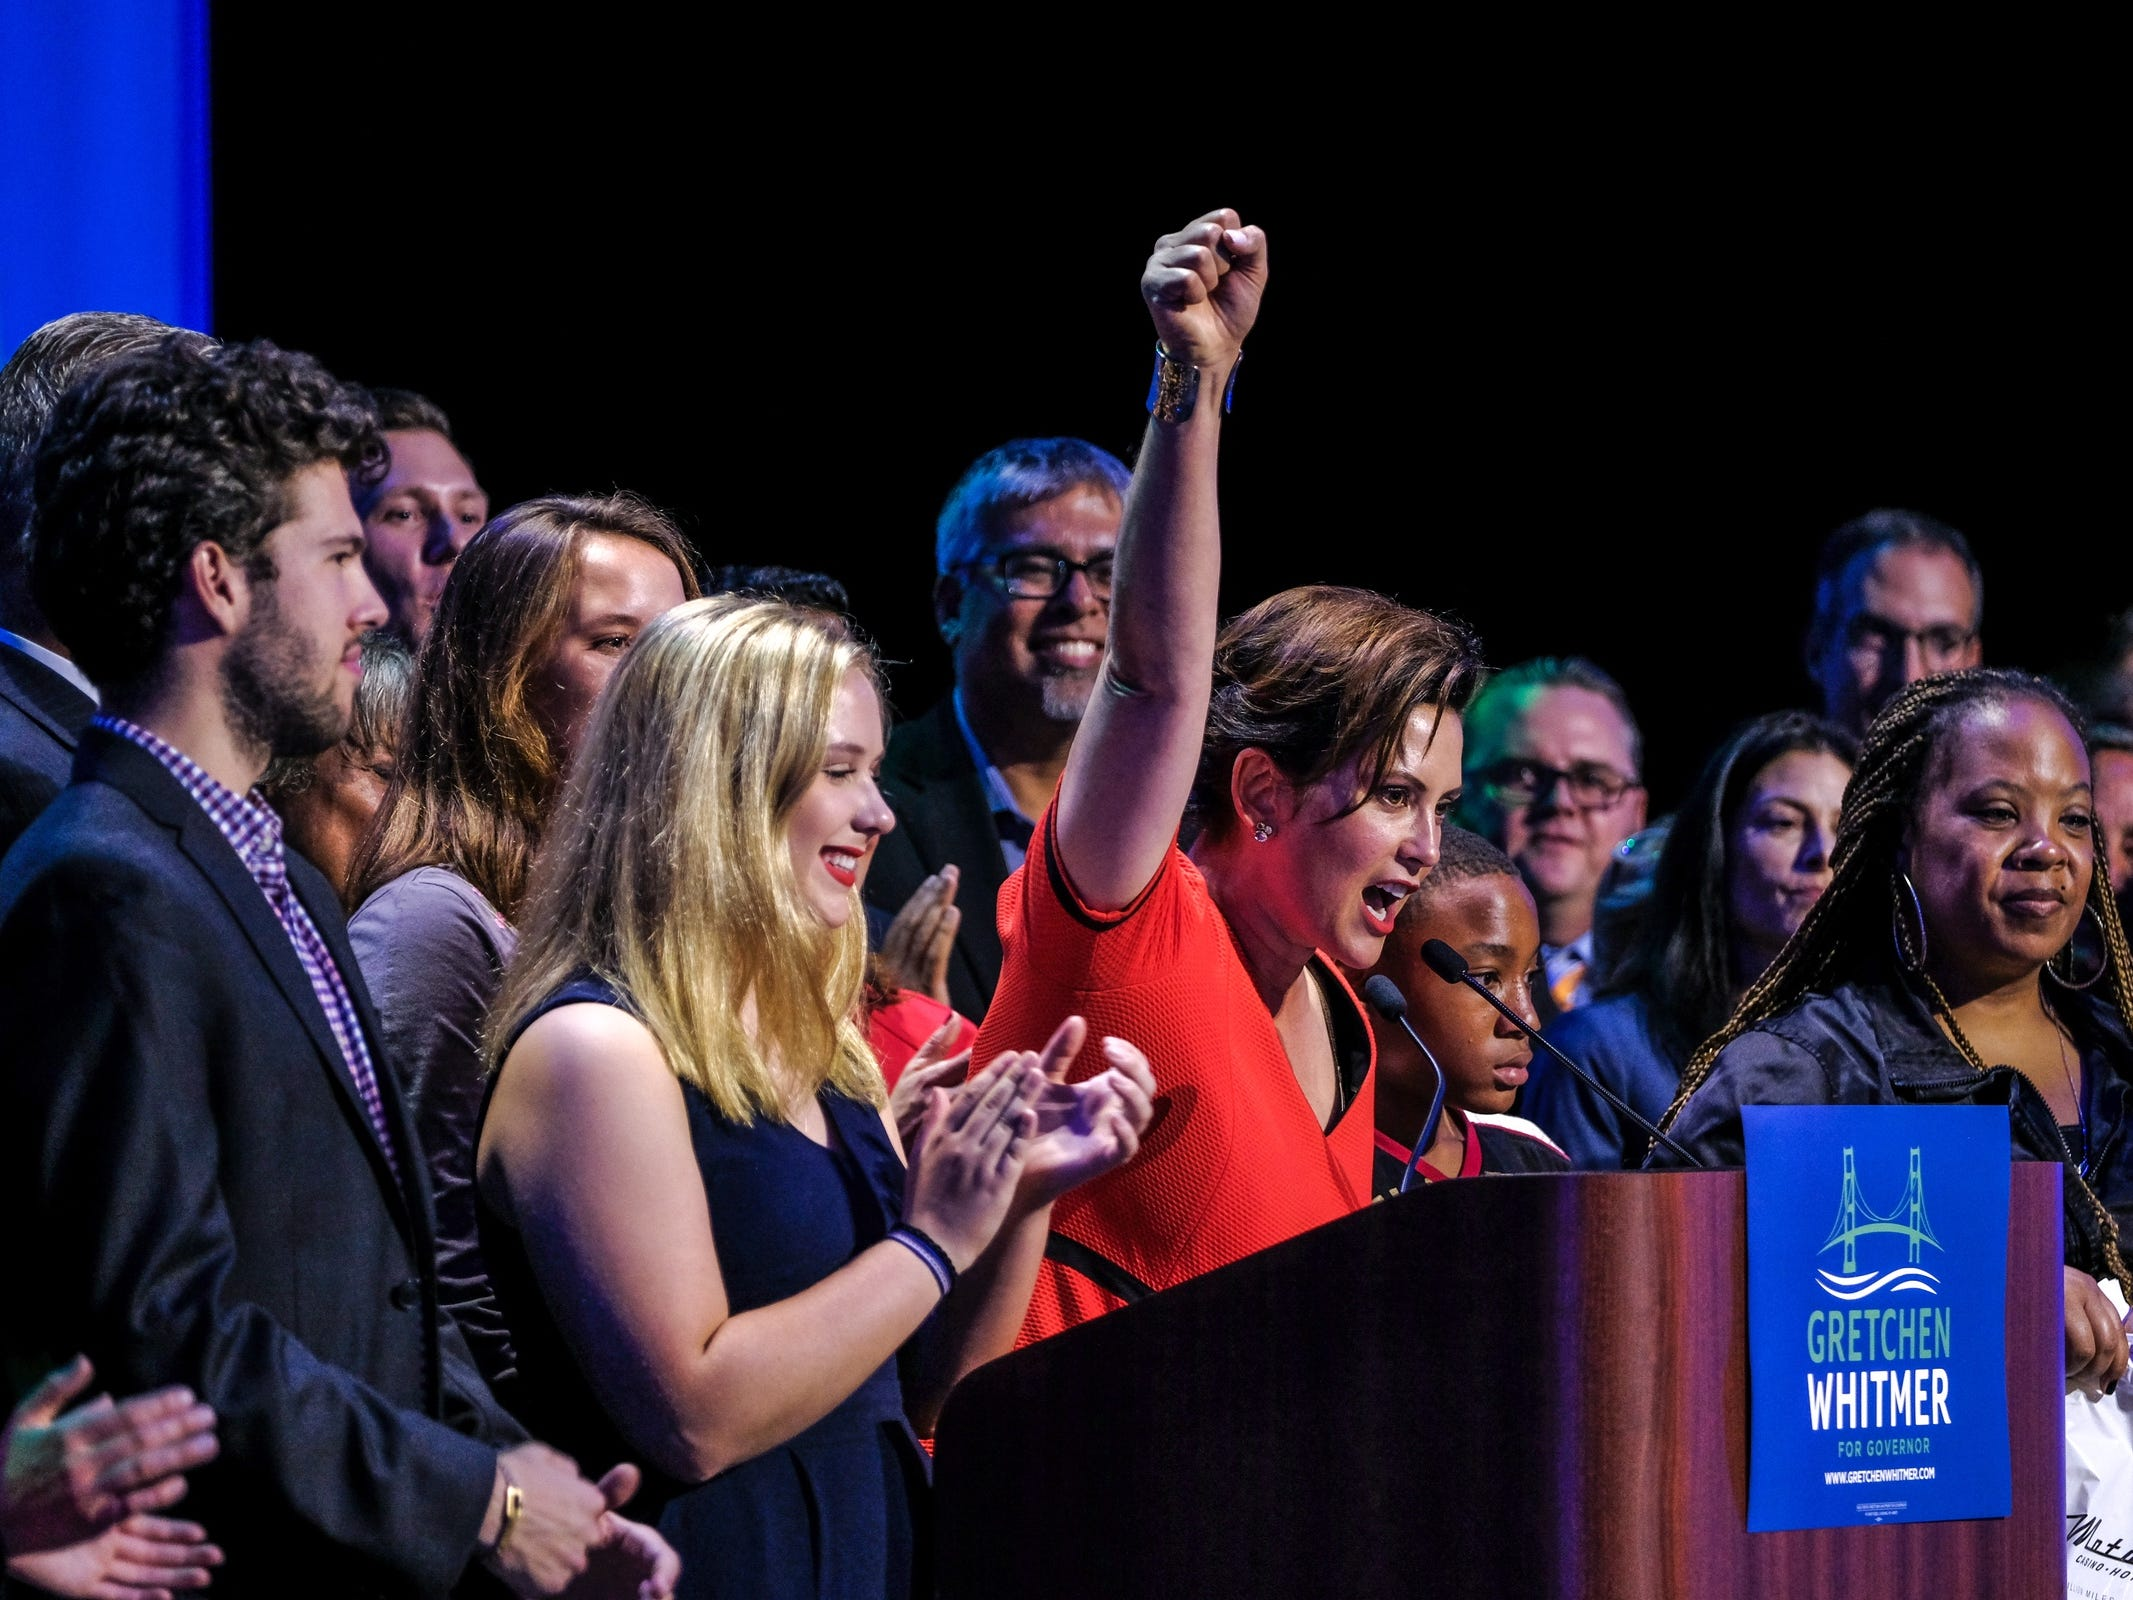 Democratic gubernatorial candidate Gretchen Whitmer speaks to supporters after winning Michigan's primary race on Tuesday, August 7, 2018 during the election night party at the MotorCity Casino in Detroit.